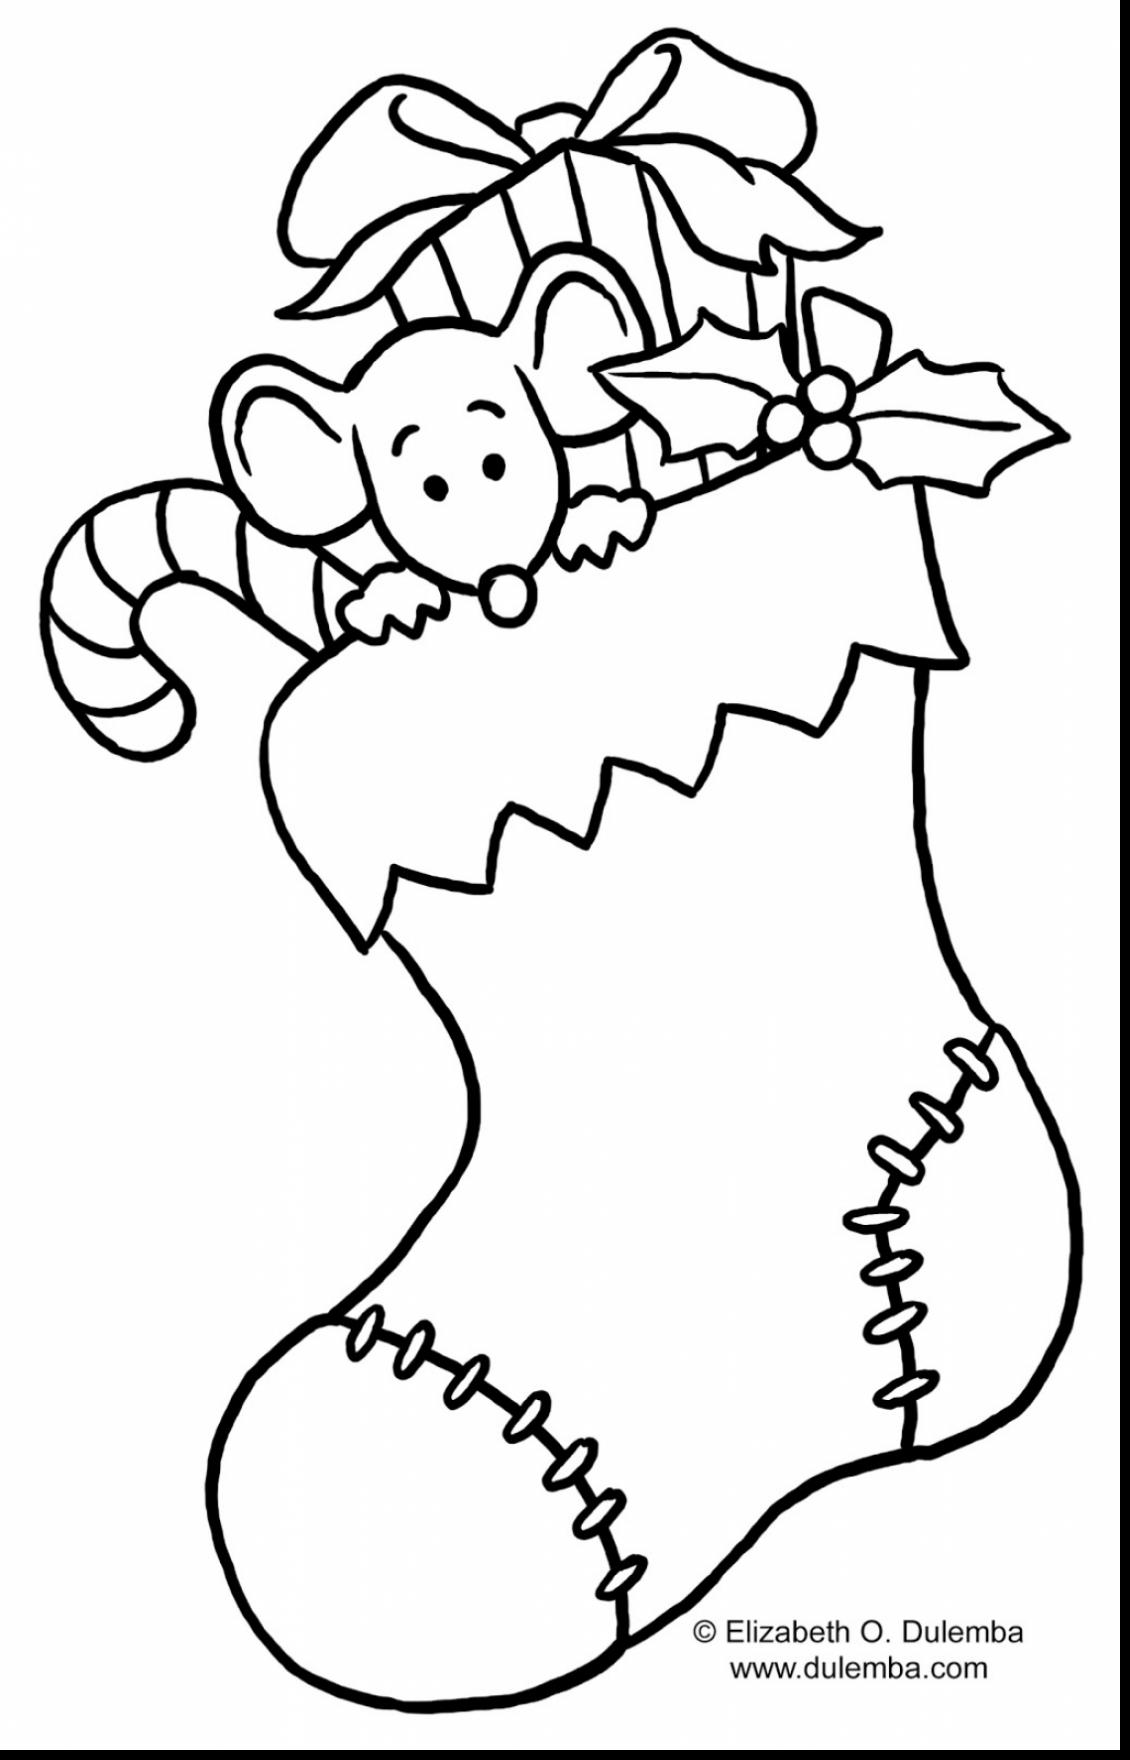 Christmas Coloring Sheets For Elementary With Hello Kitty Pages Free Printable Diagnostic